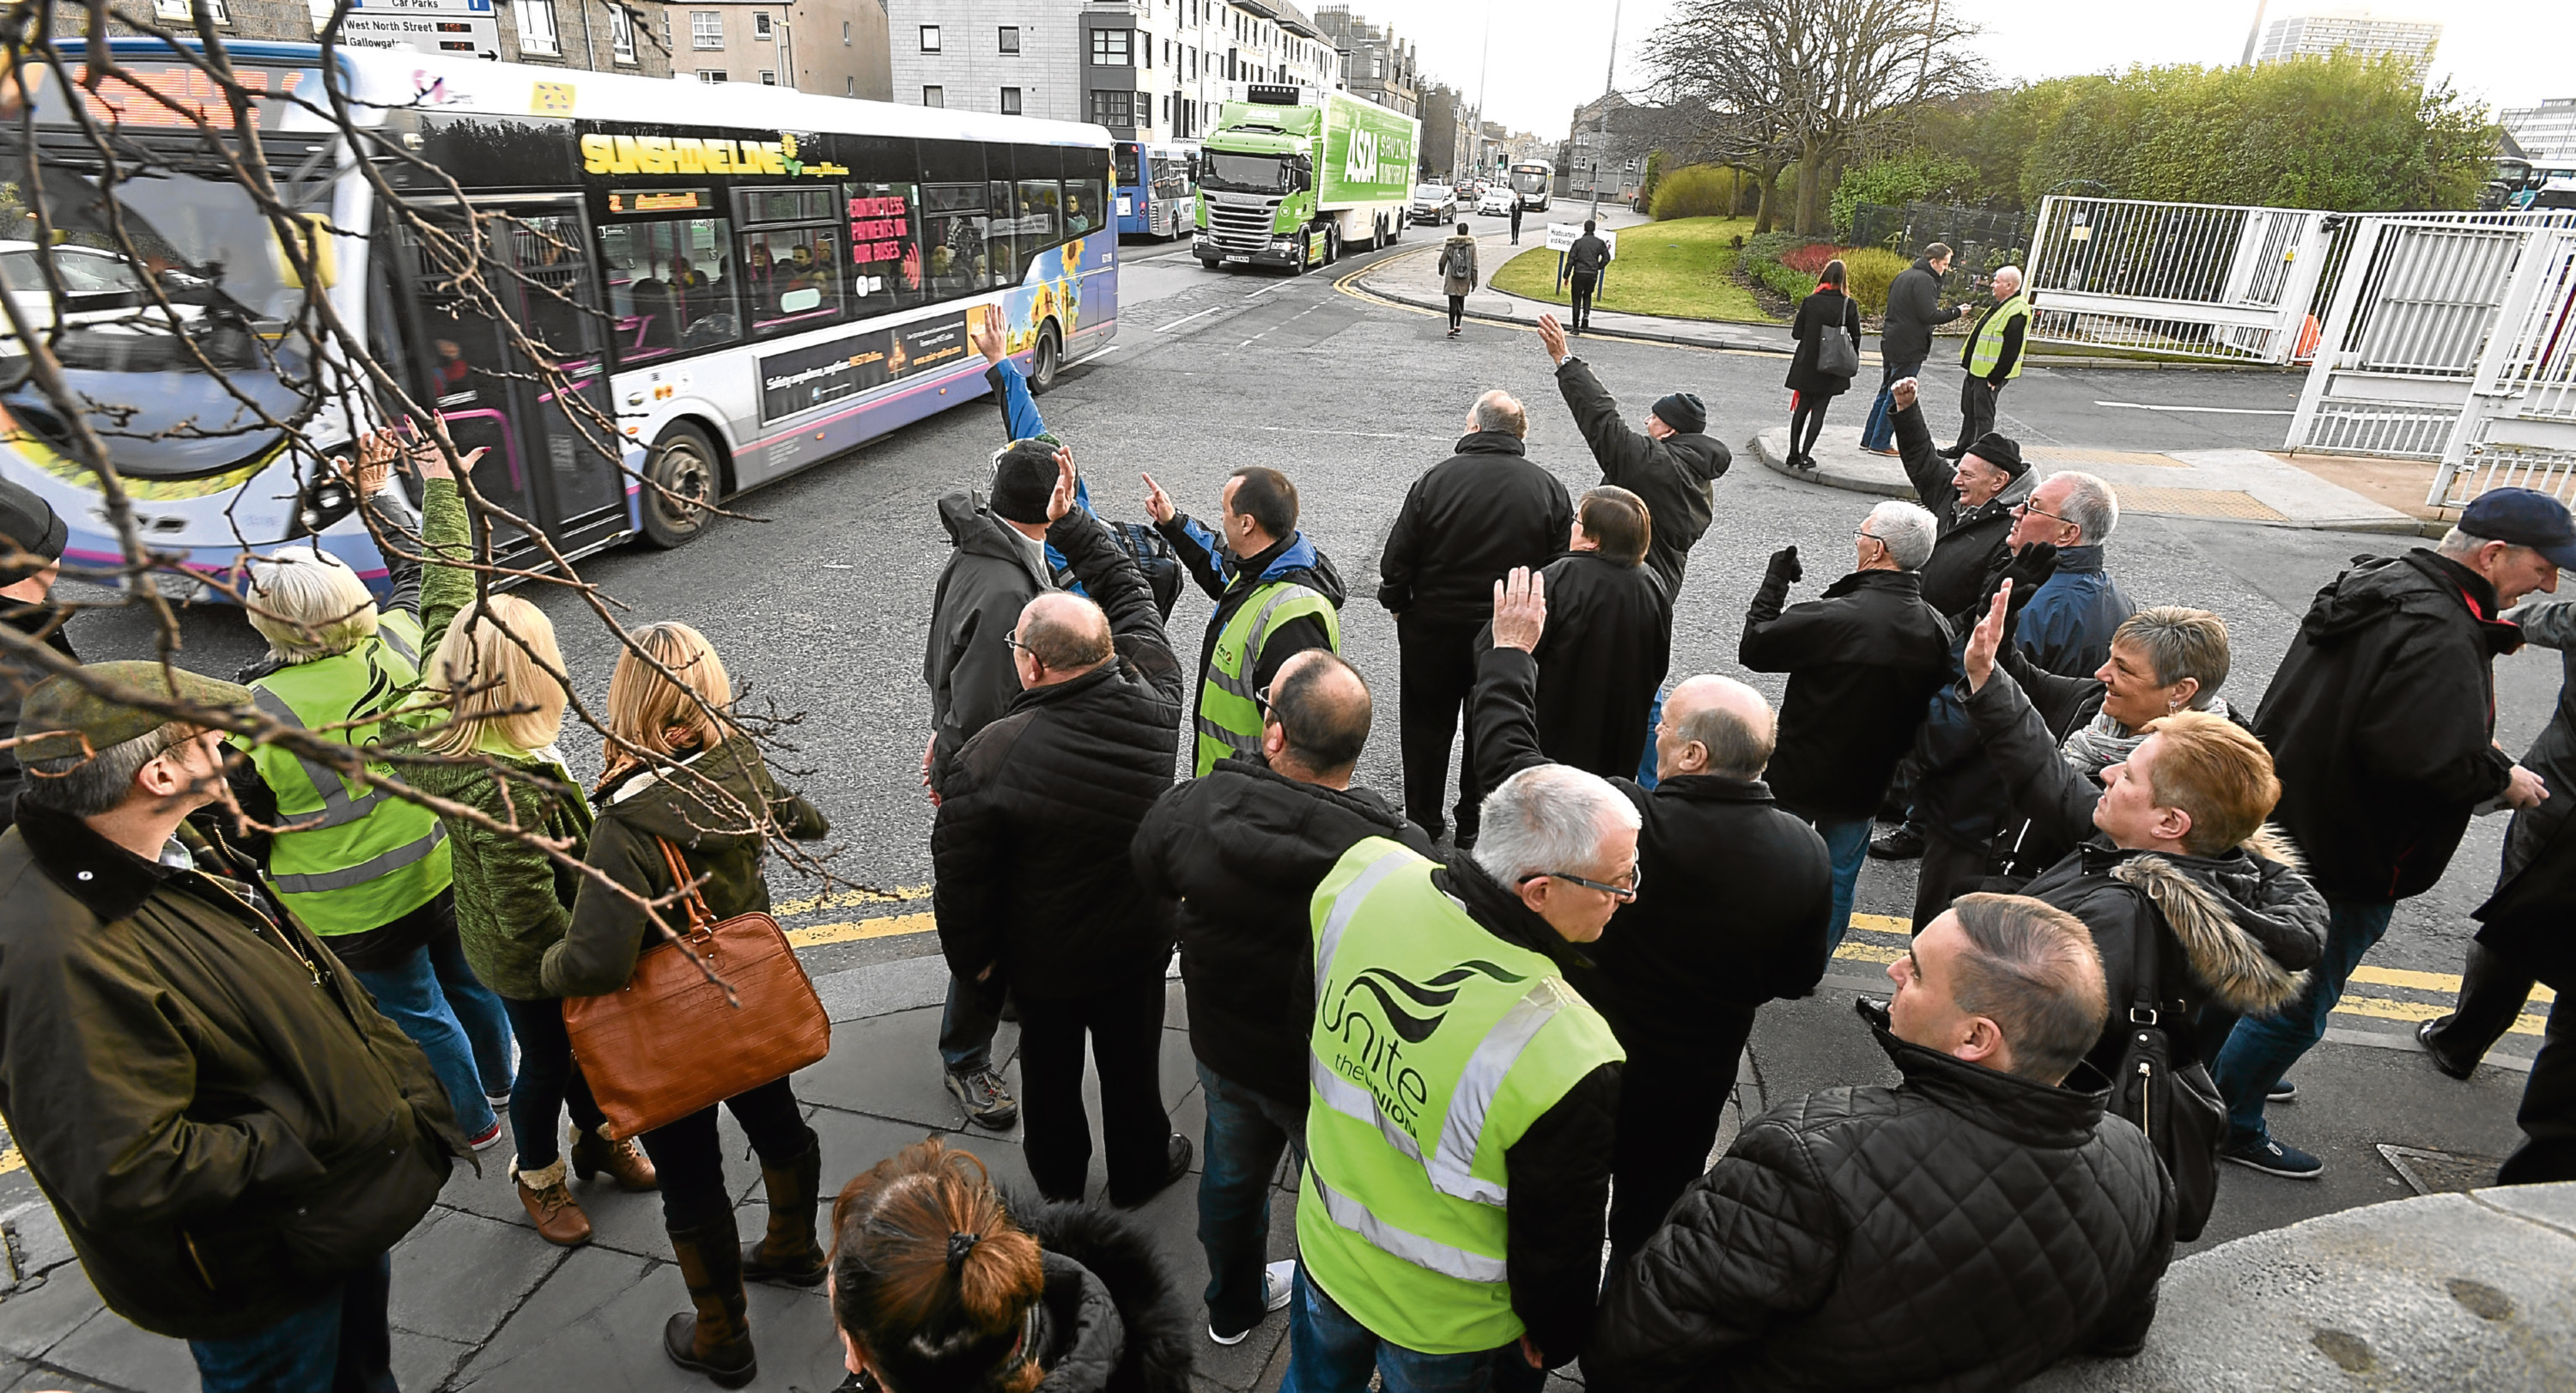 Bus drivers, their families and retired drivers protested about terms and conditions of new contracts earlier this year.